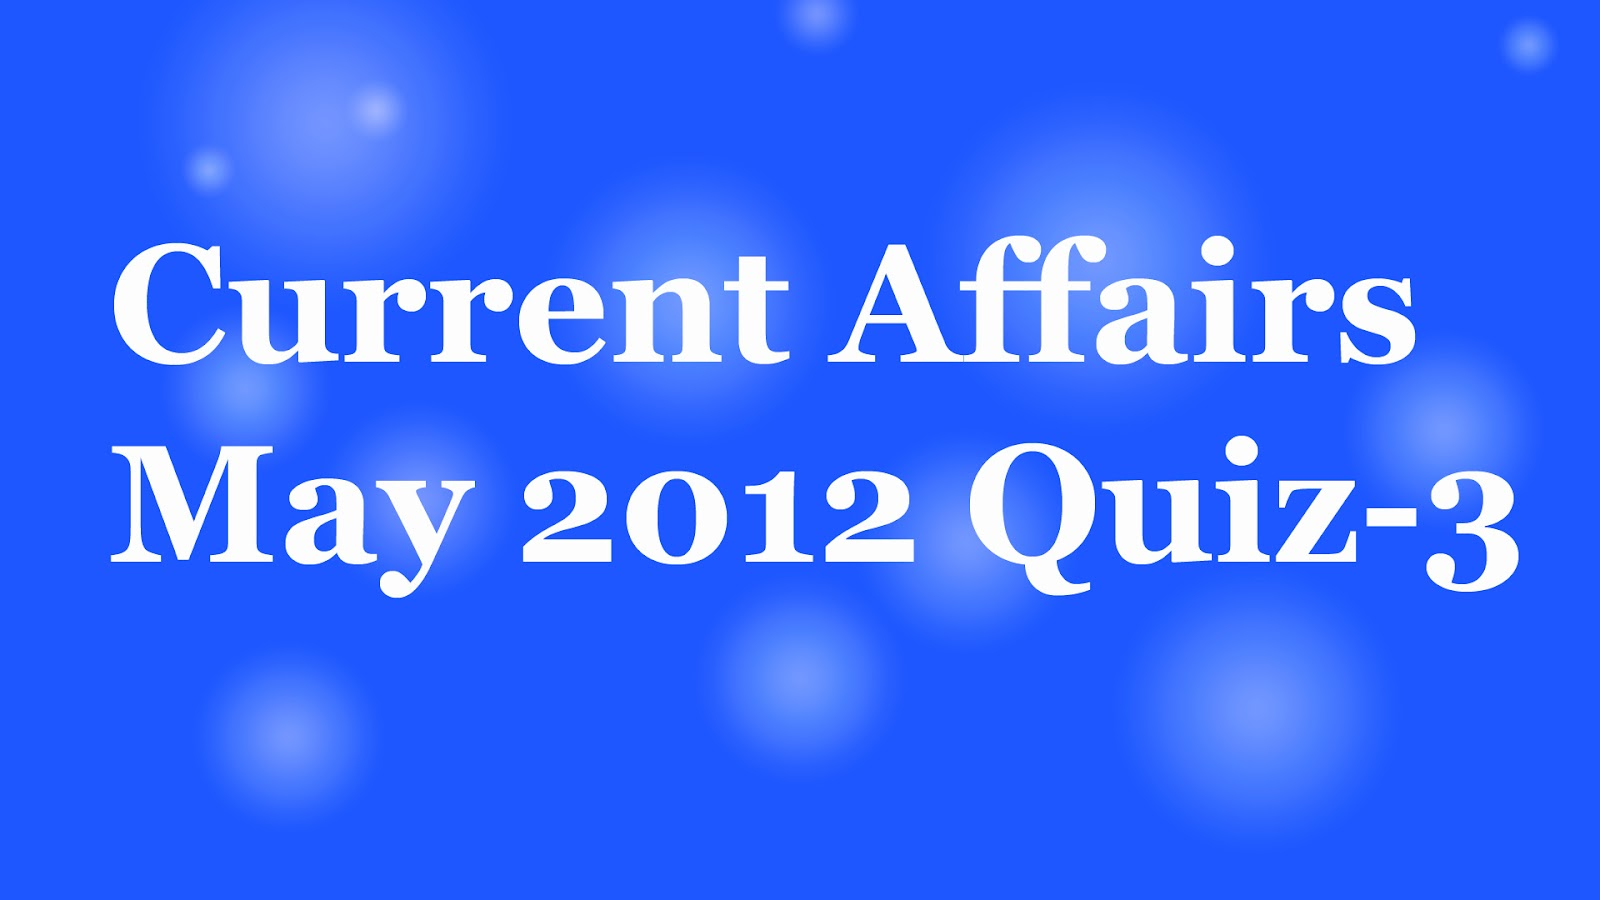 Current Affairs Gk 2013 Mcq Question Answers Free Download Pdf